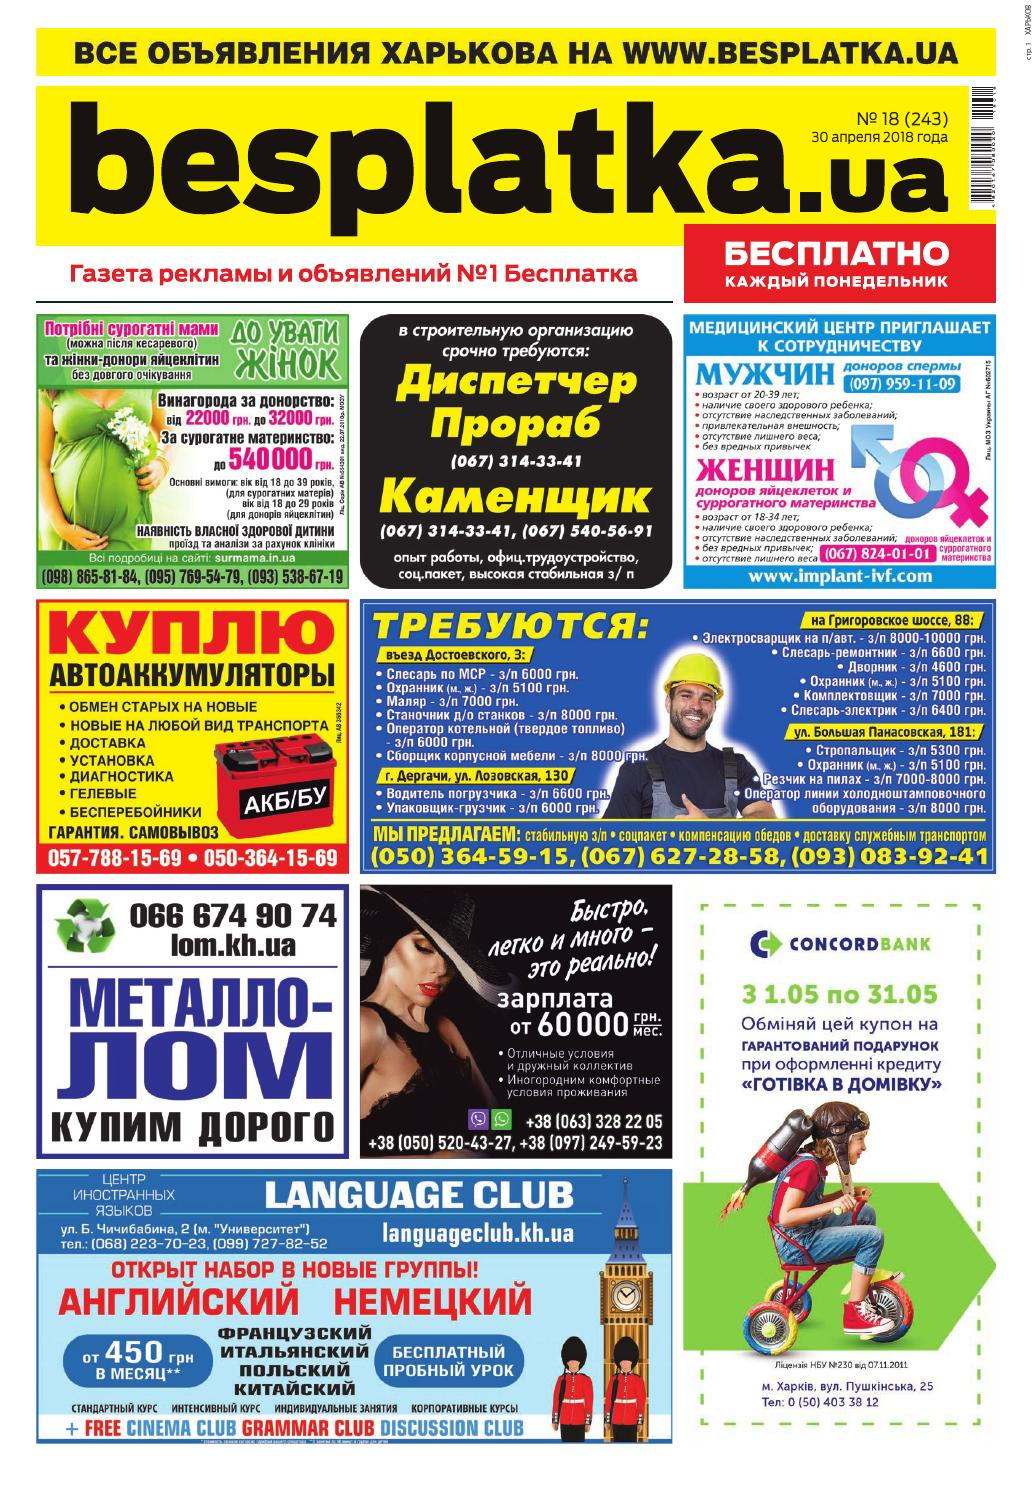 Besplatka  18 Харьков by besplatka ukraine - issuu e0199ccdfd0